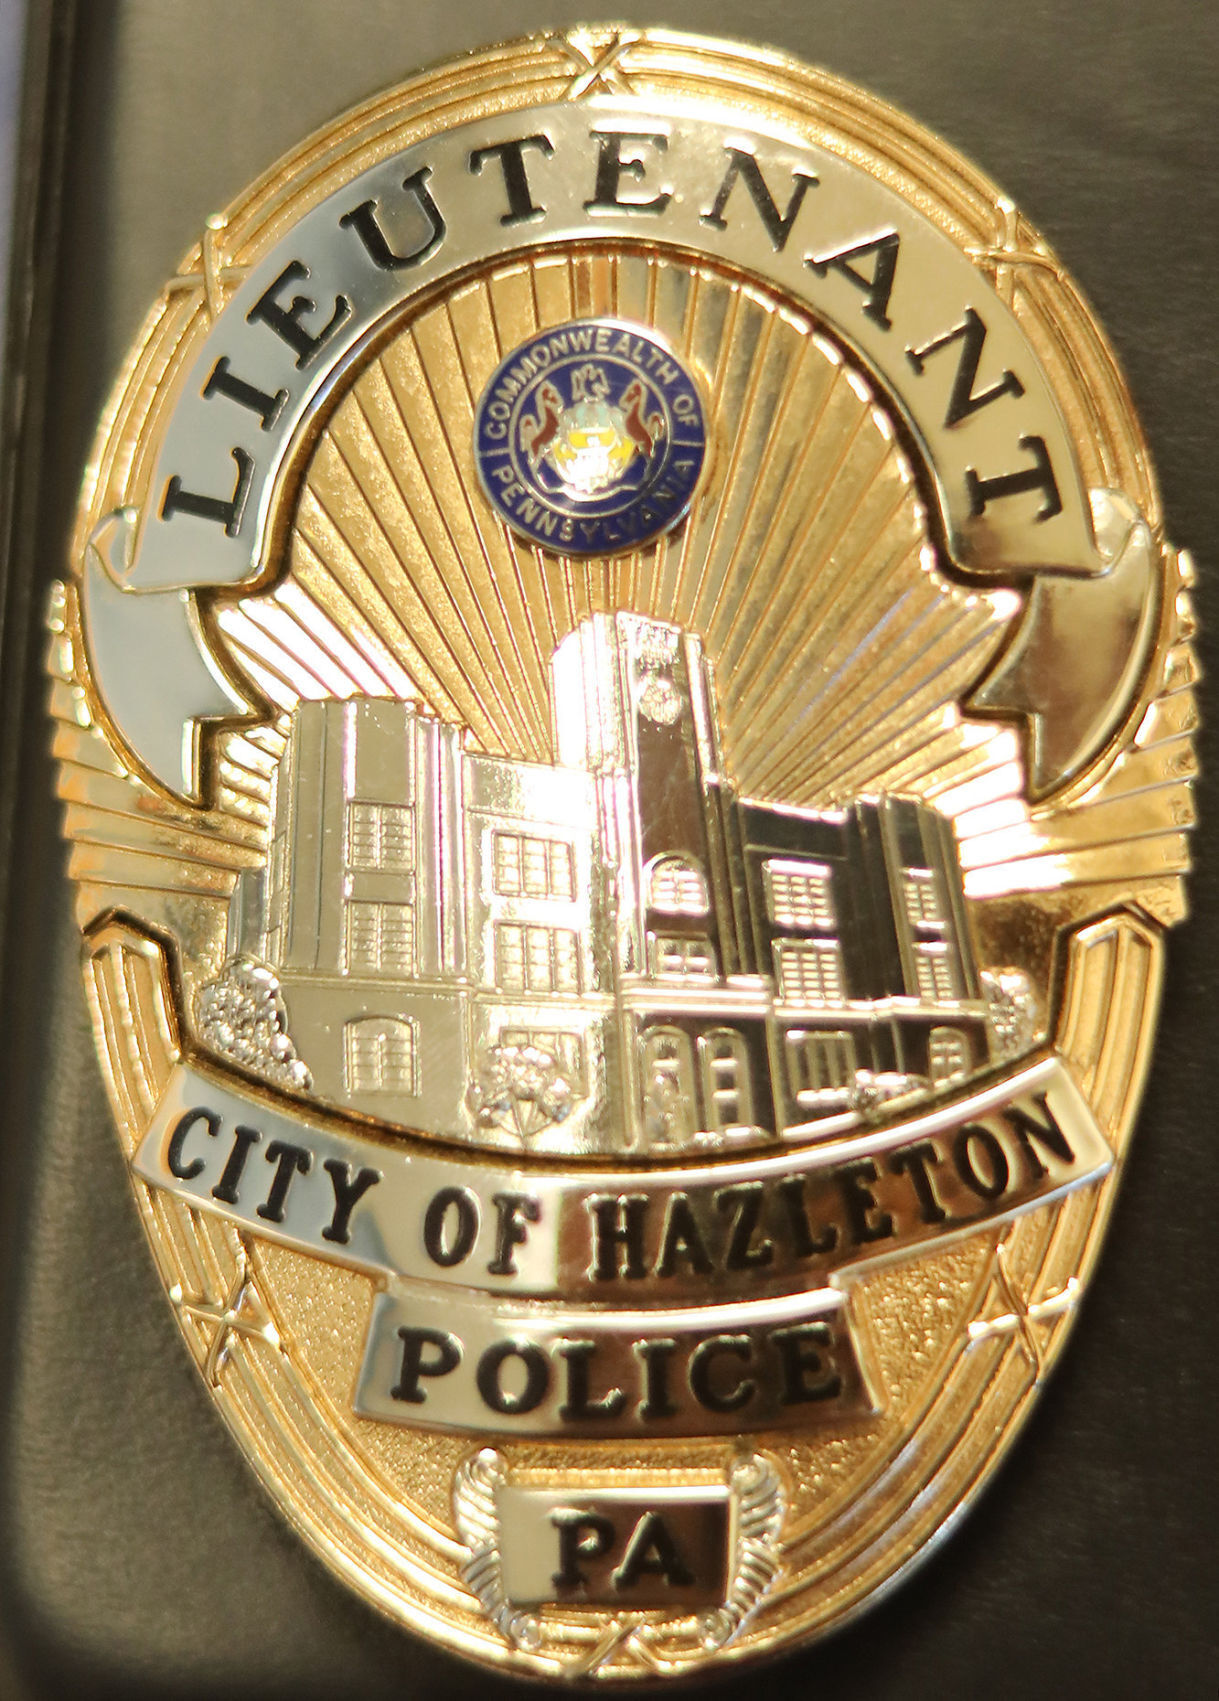 hz081620hazletonbadge